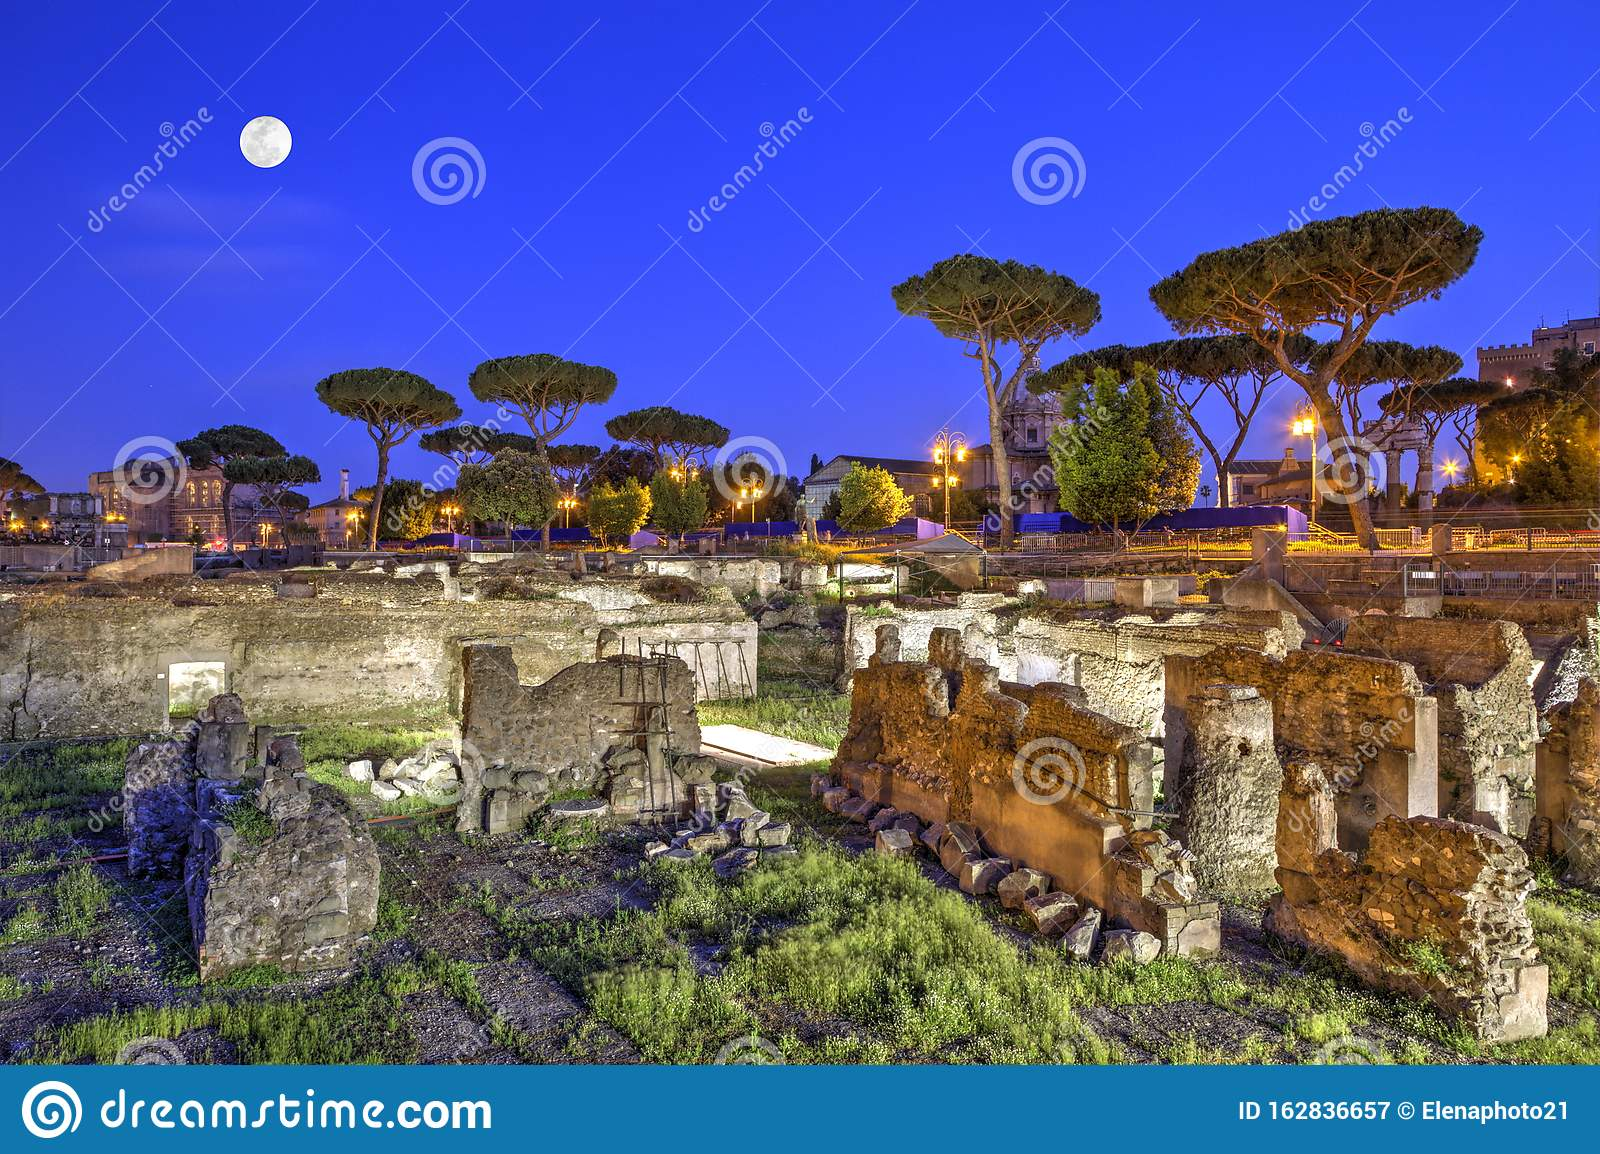 Roman Forum in Rome by night, Italy - HDR